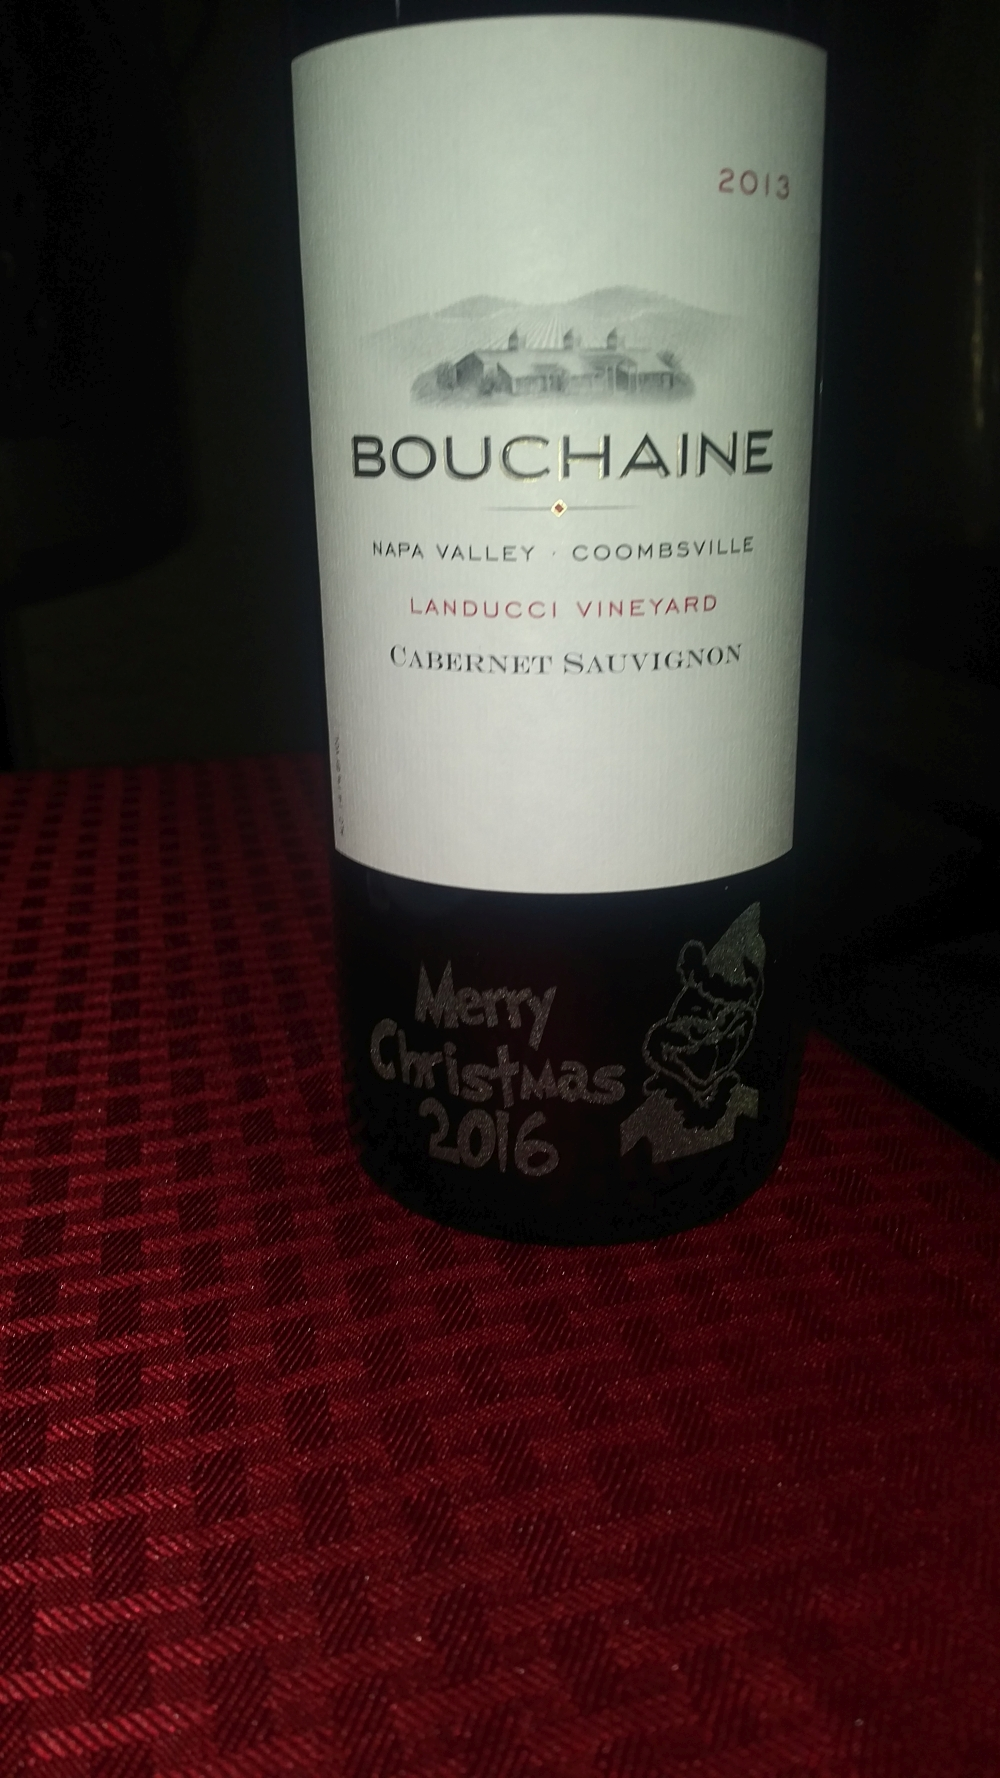 Bouchaine Release Party, November 19, 2016